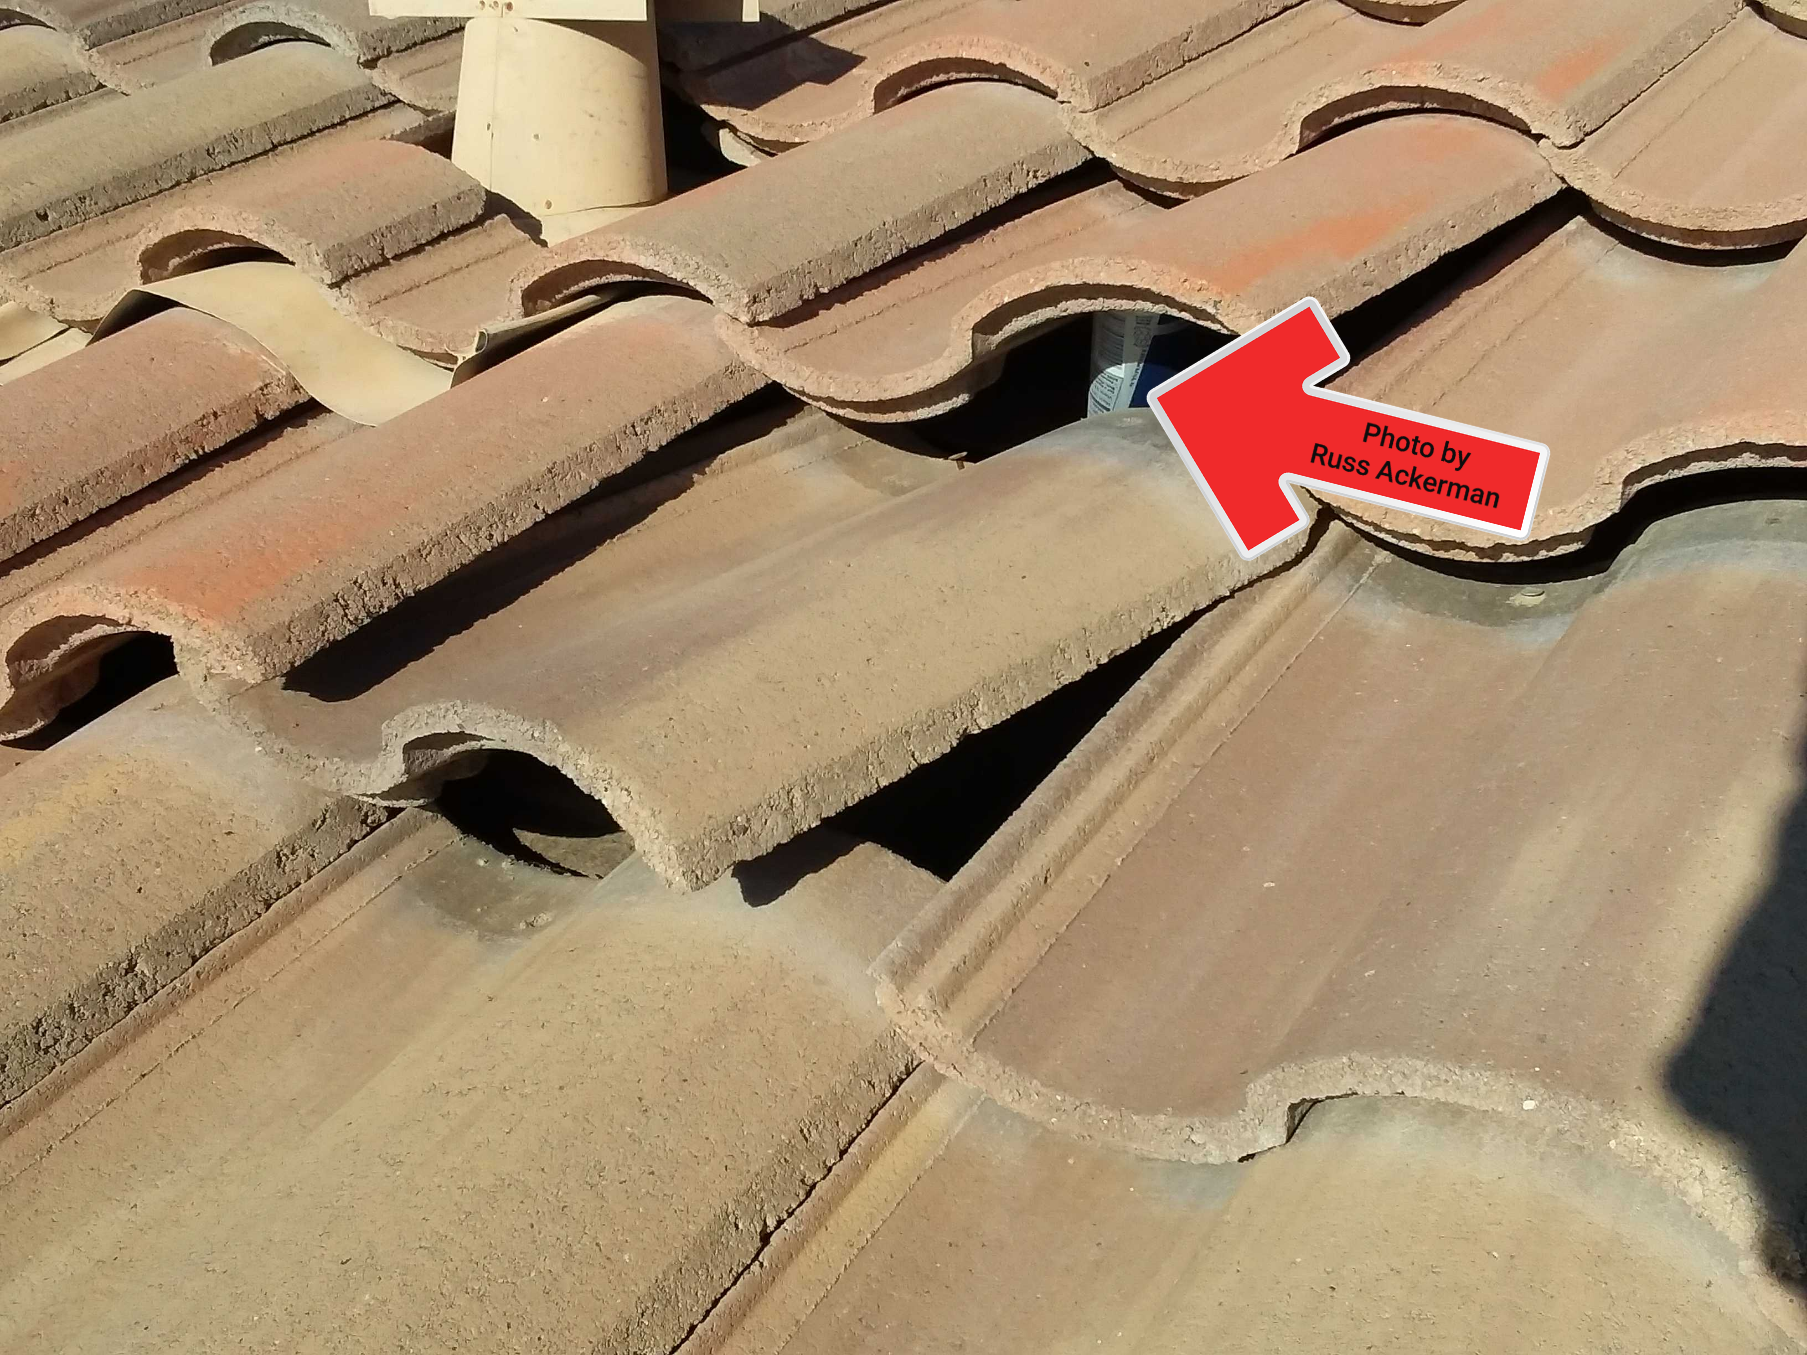 Whoever replaced the mud balls on this roof left their Red Bull can jammed under a couple roof tiles. Not a roofer I would allow on my roof.